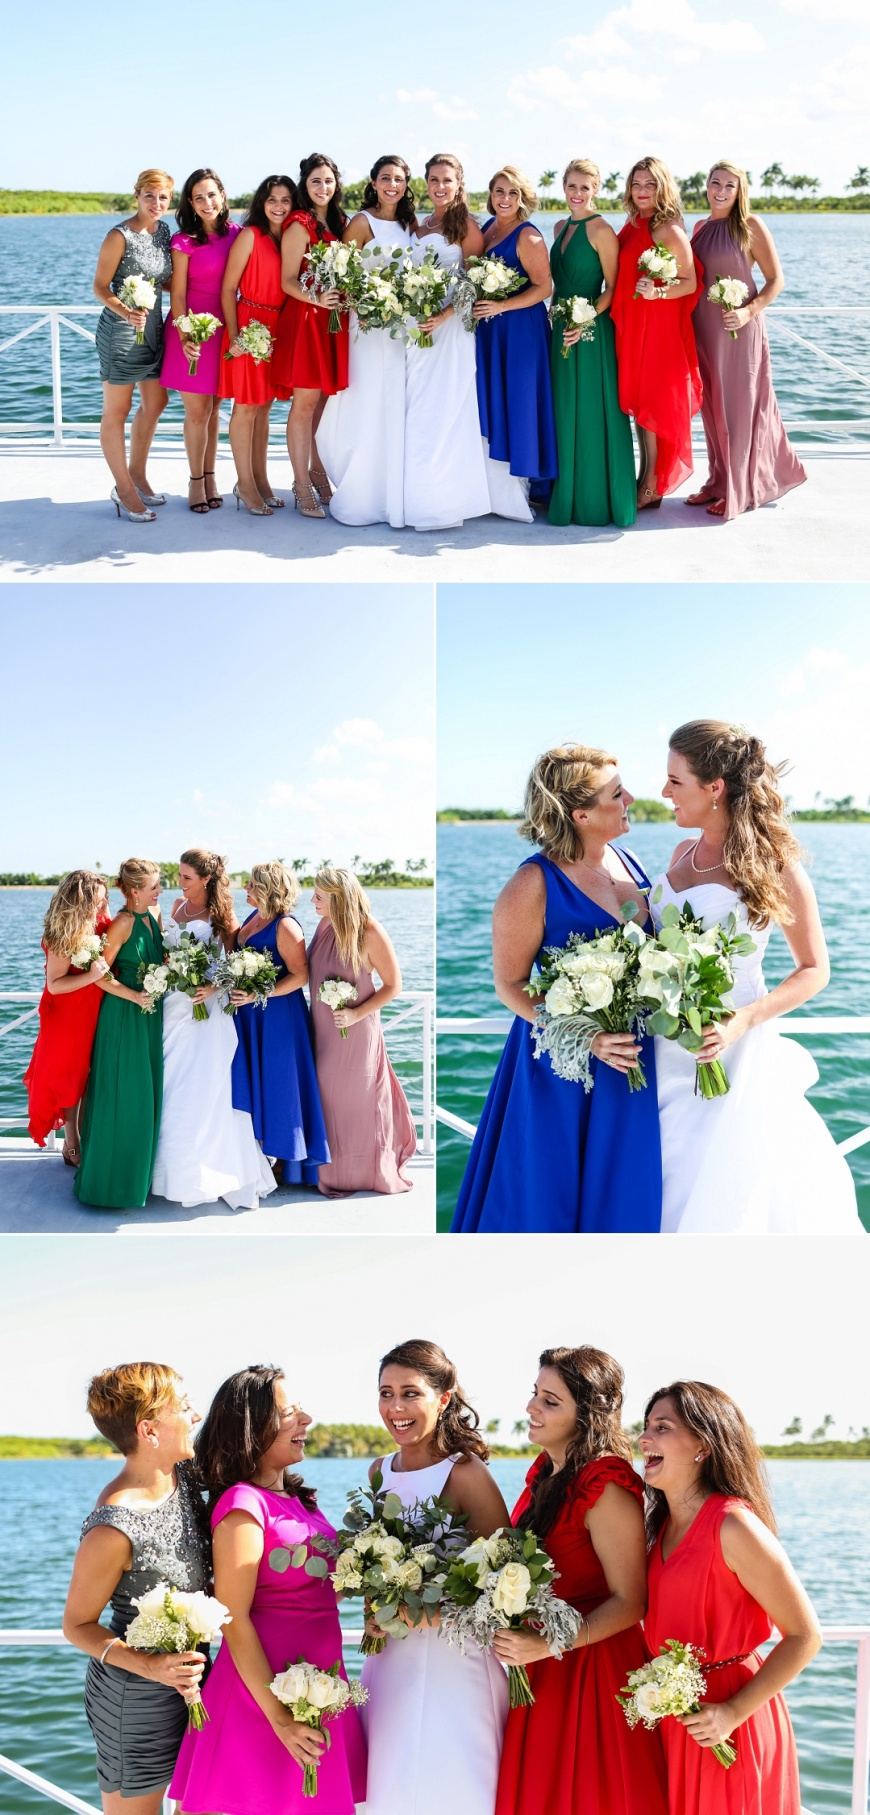 Royal-Palm-Island-Miami-Wedding-Photographer_1038.jpg